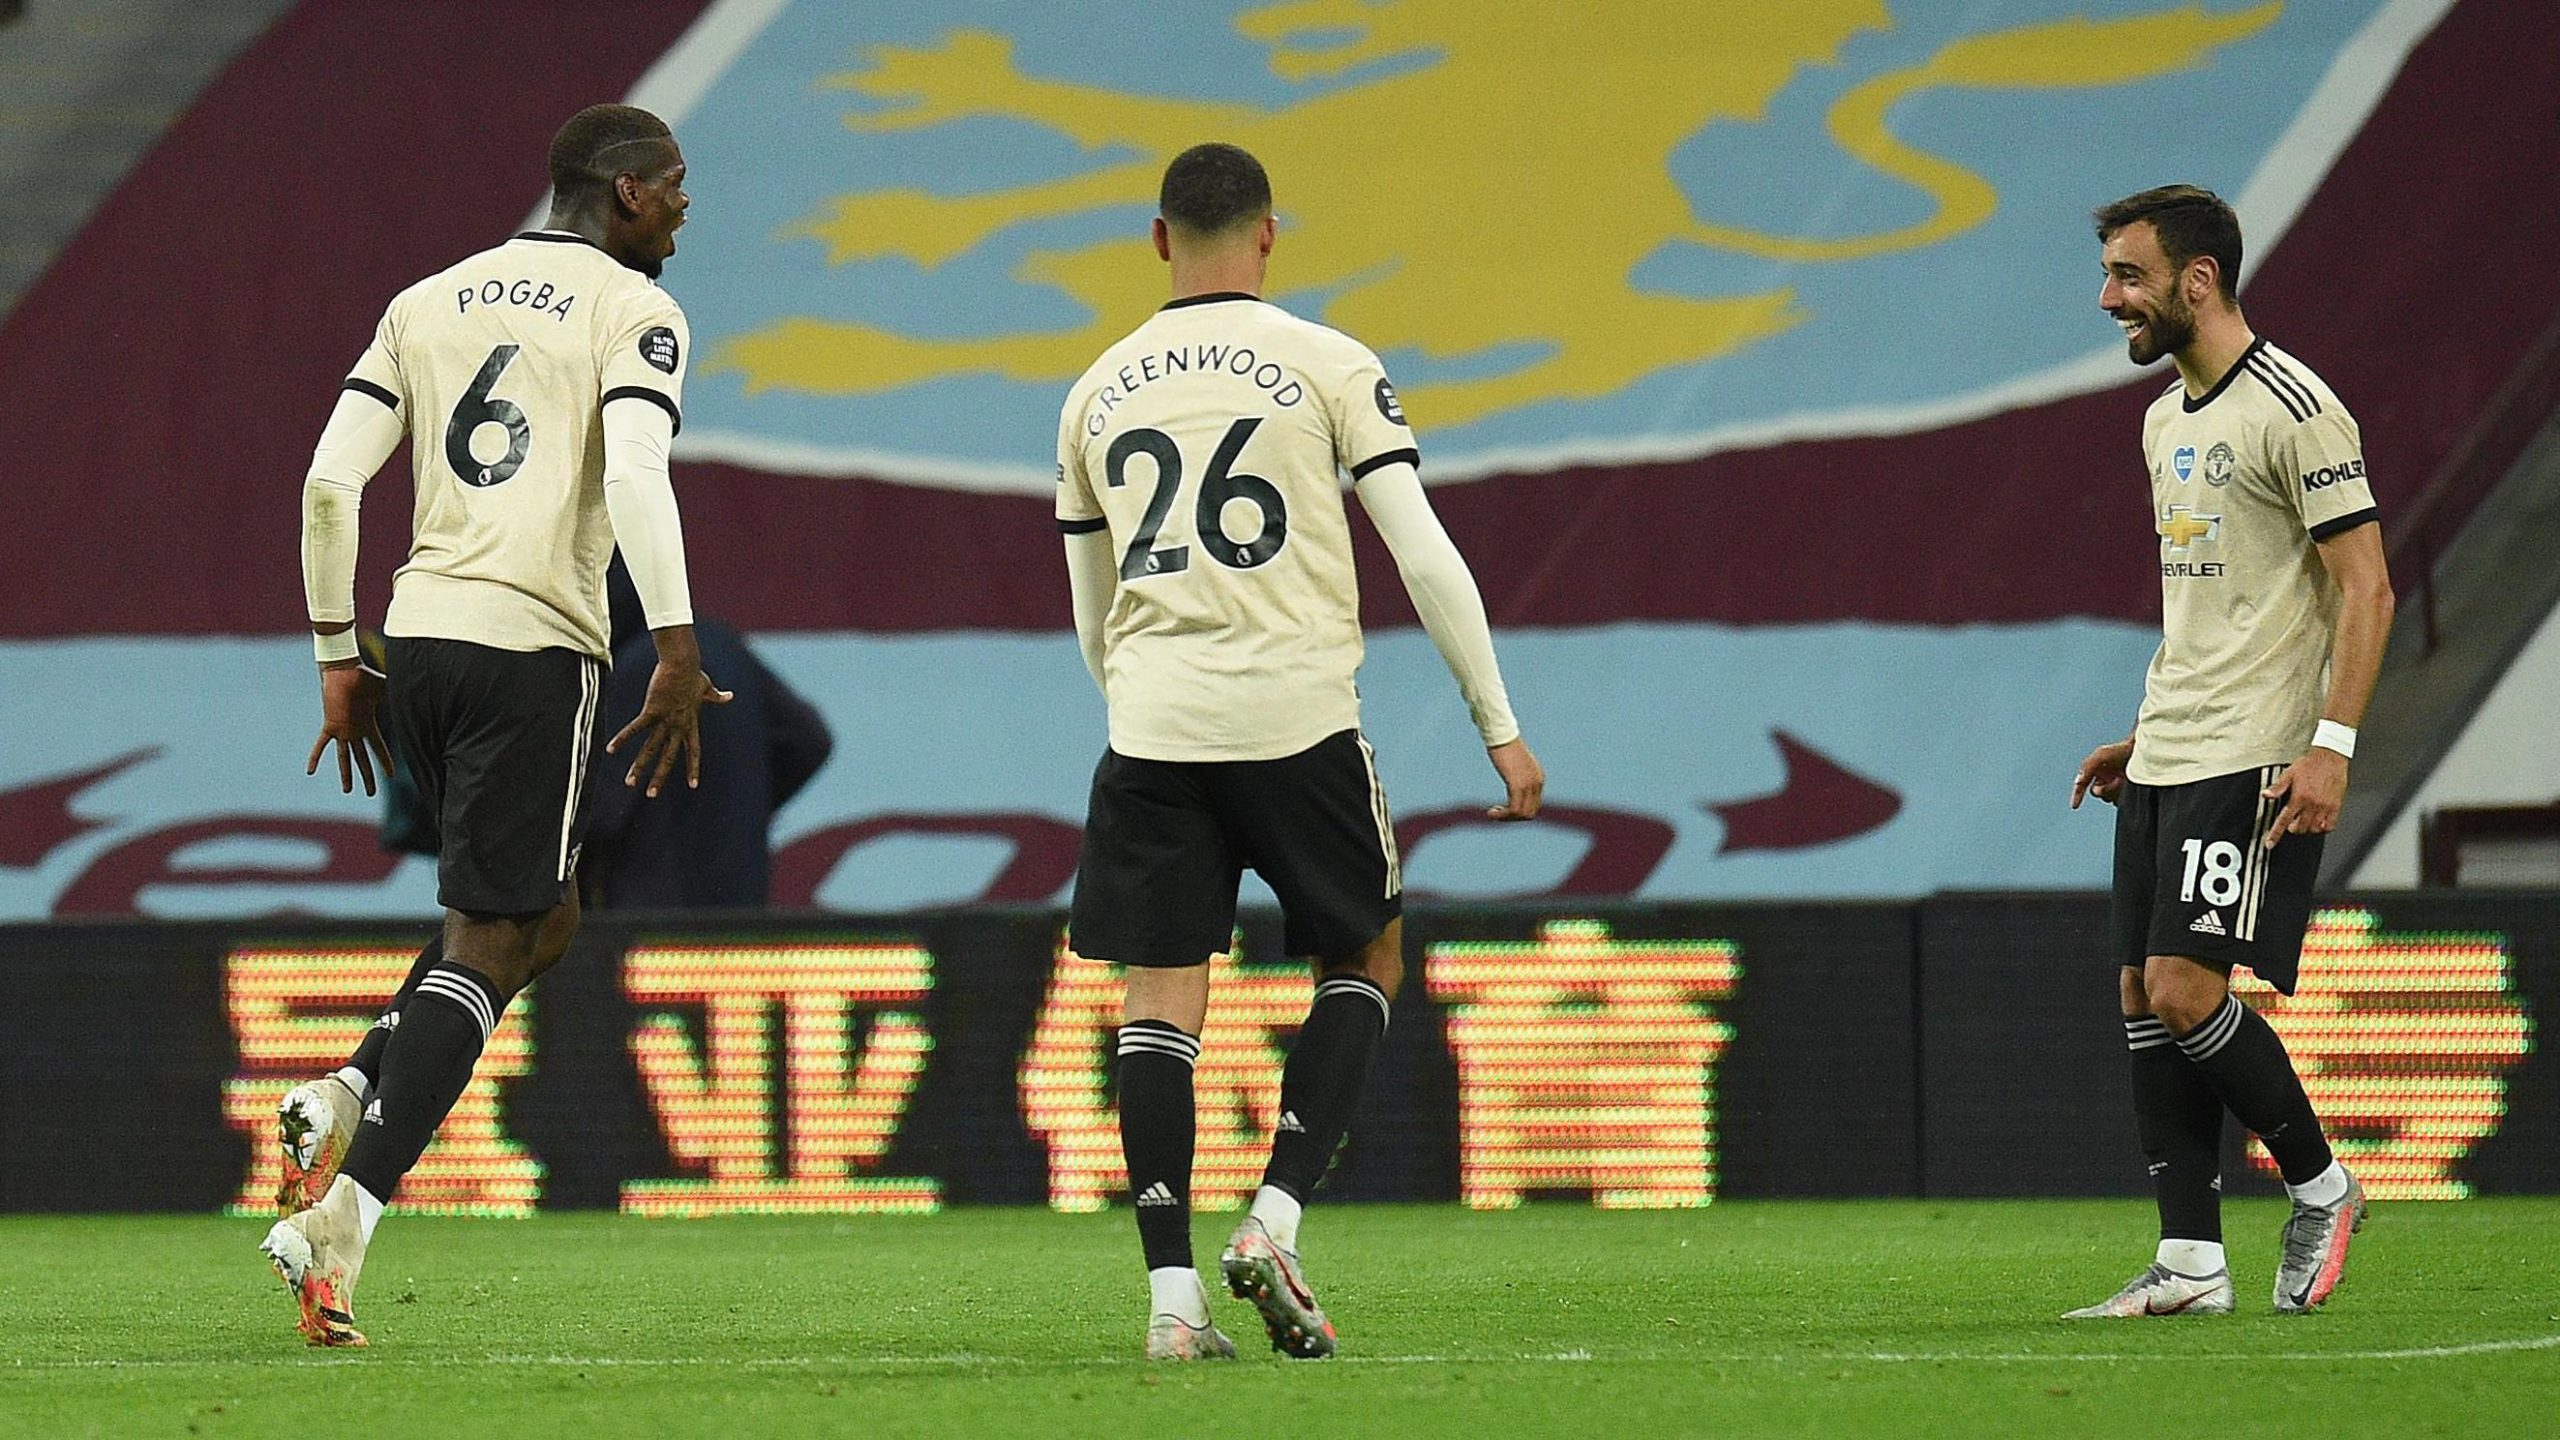 Eagles Euro Roundup: Ighalo Helps Man United Create EPL History In Win Vs Aston Villa; Troost-Ekong Benched In Udinese Away Win